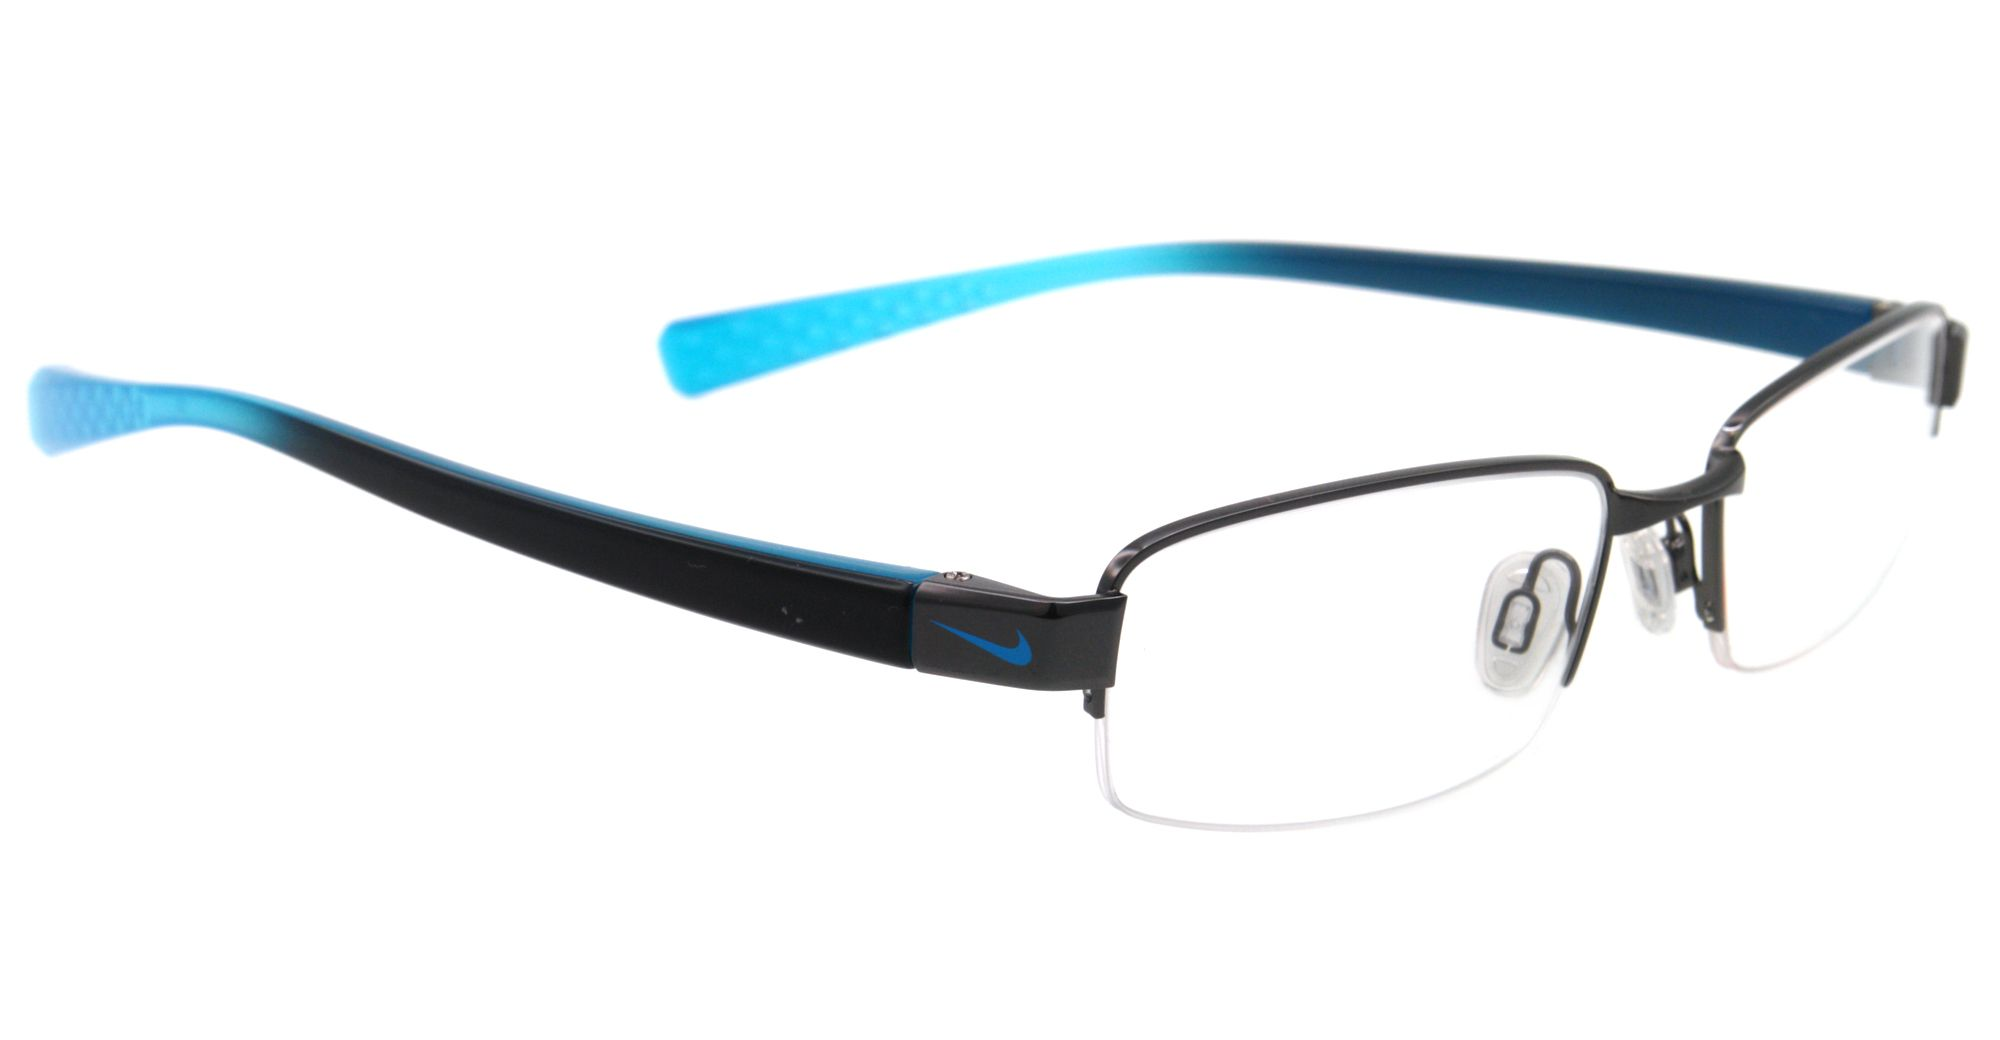 Nike Gaze Evo760 available at Busby Eye Care! | Nike Glasses and ...